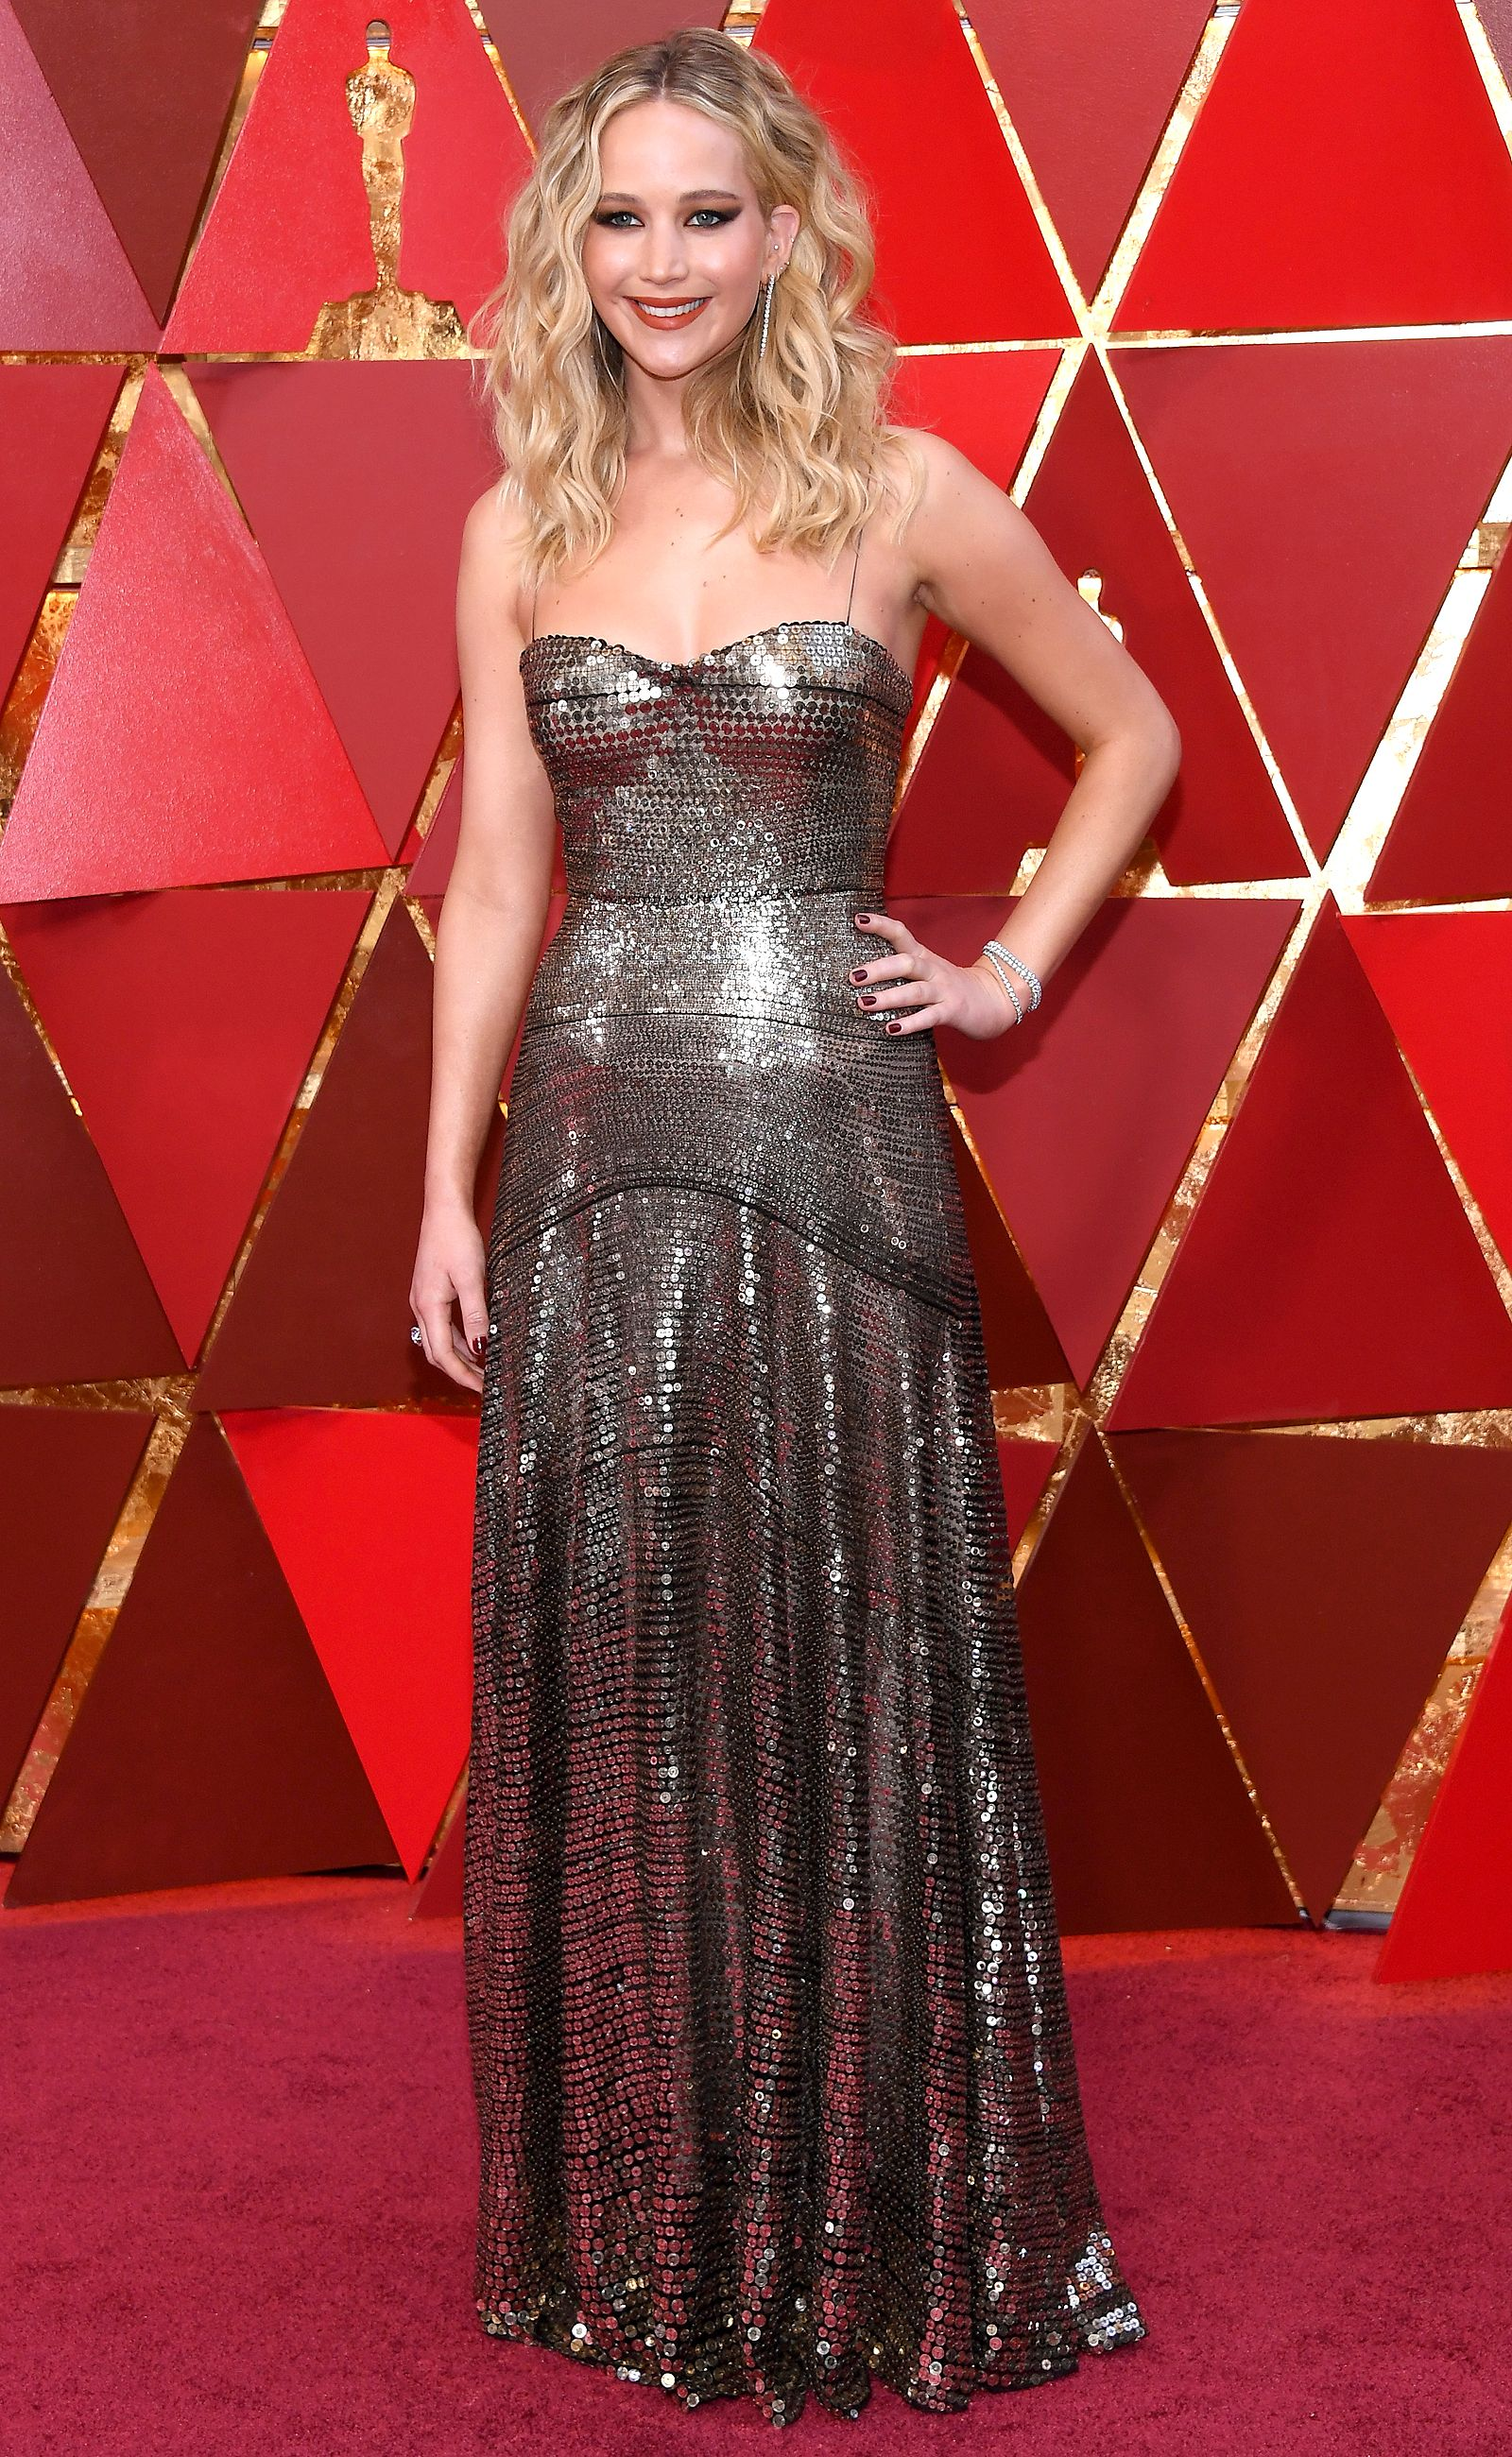 Oscars 2018 Best Dressed on the Red Carpet According to ...